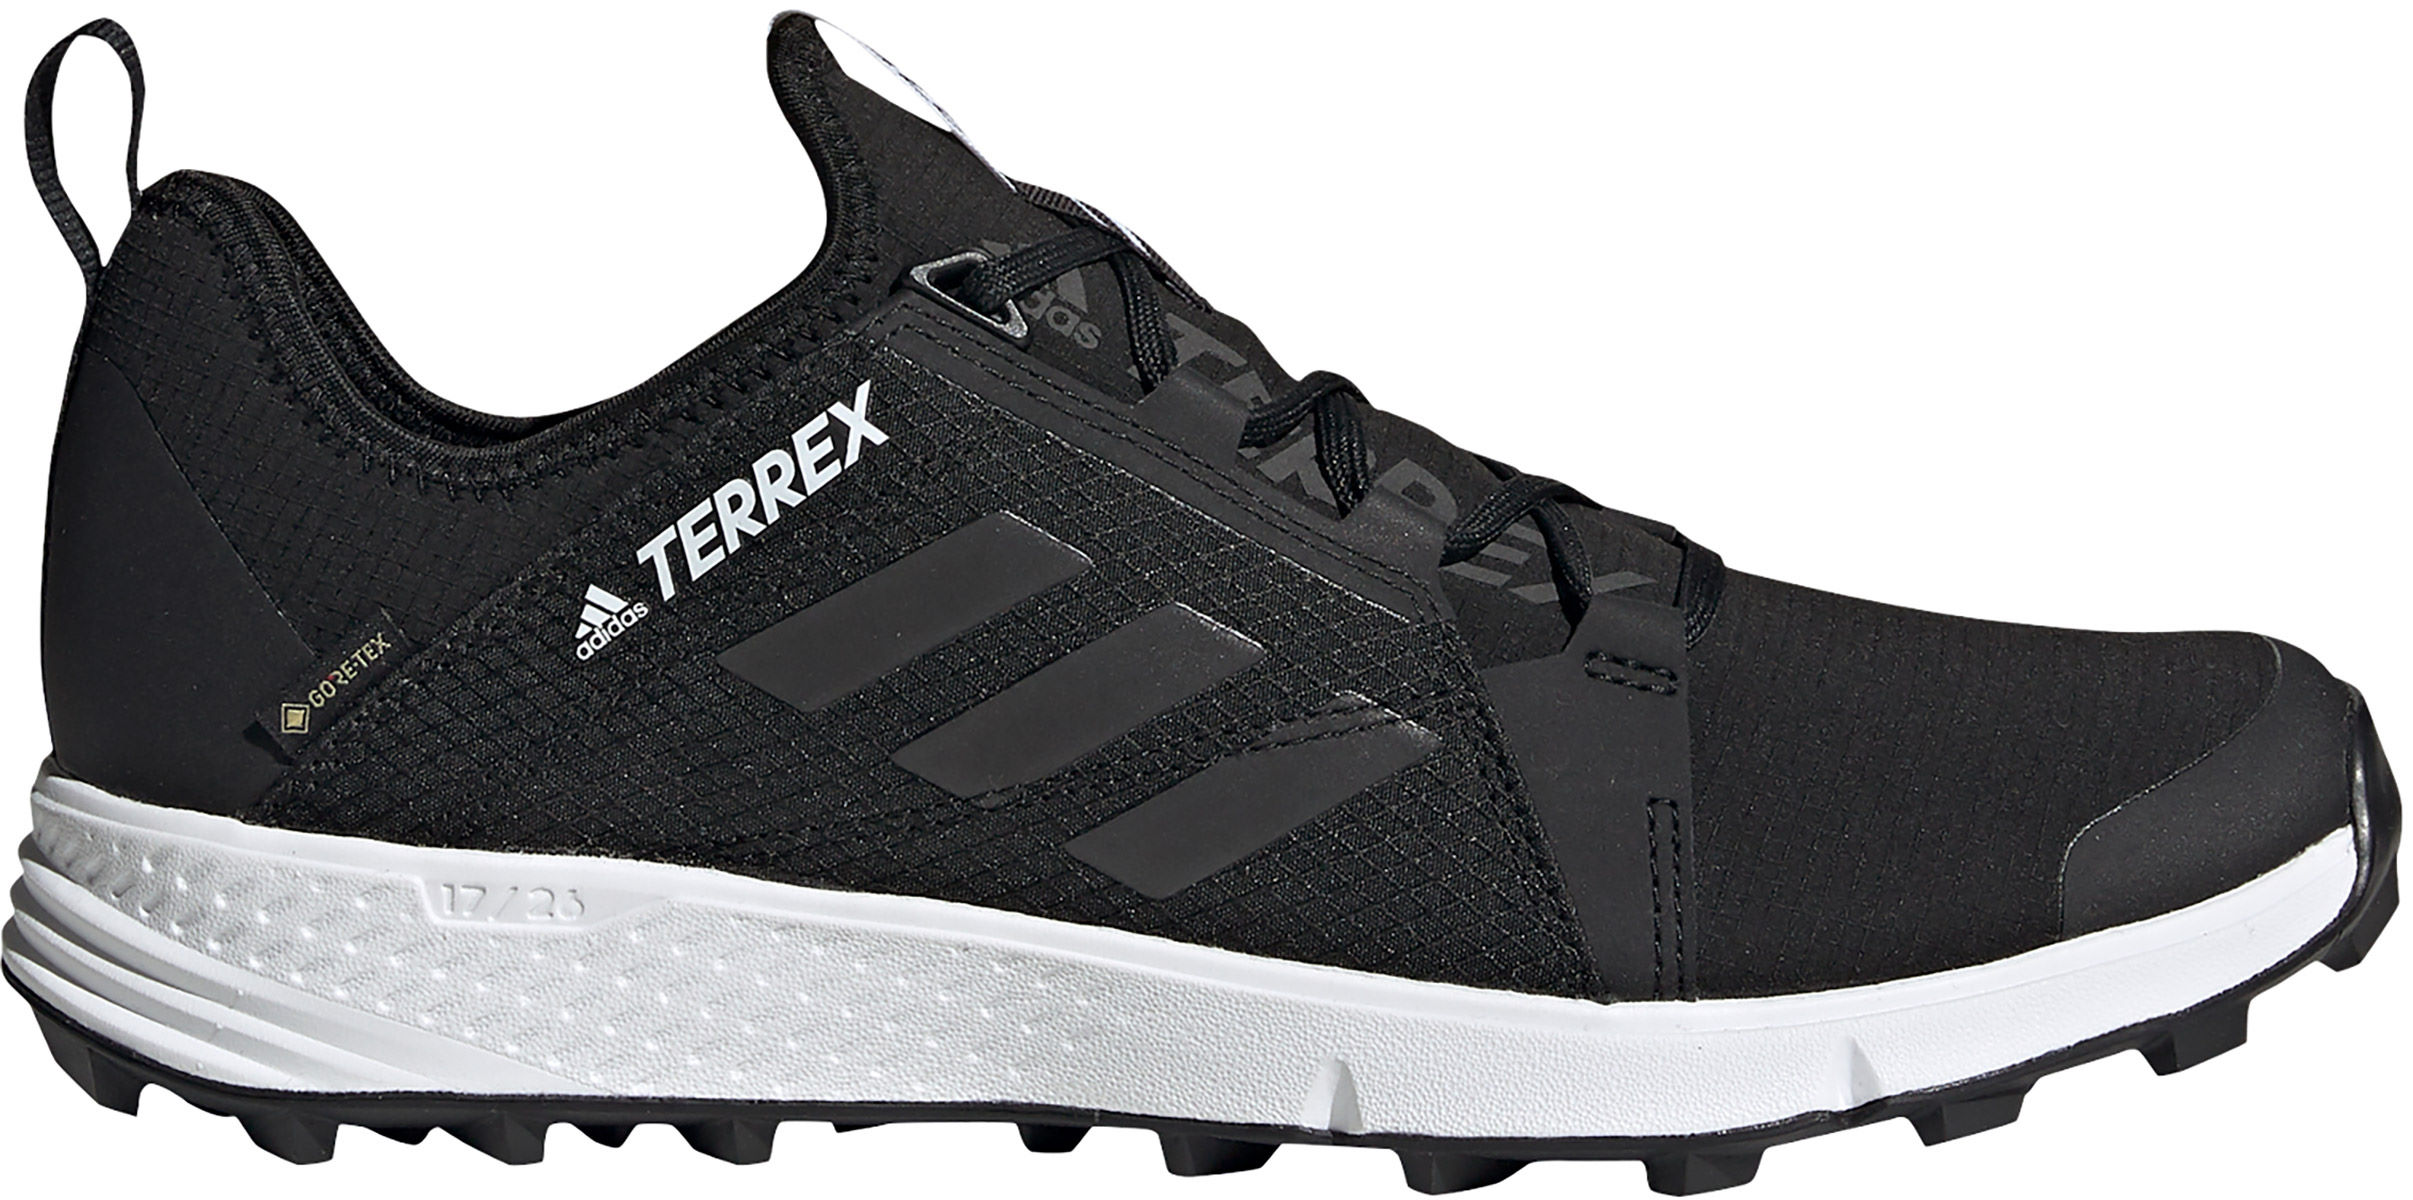 Adidas - Terrex Speed | cycling shoes